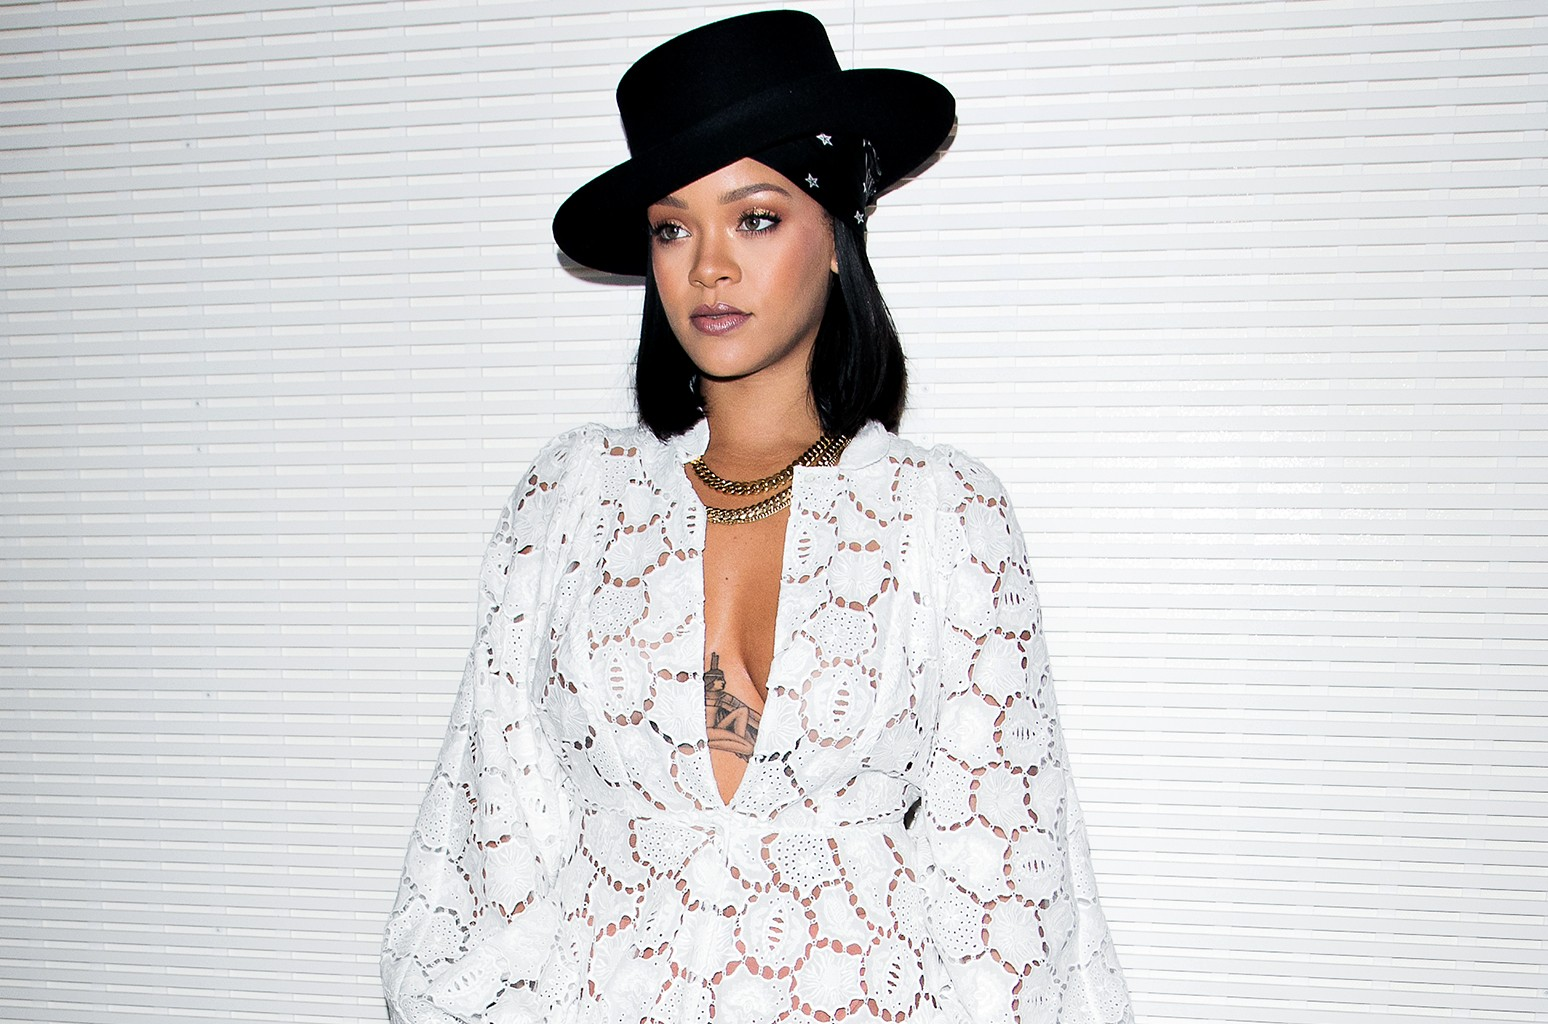 Rihanna attends the 'Young Fashion Designer': LVMH Prize 2017 edition at Fondation Louis Vuitton on June 16, 2017 in Paris, France.